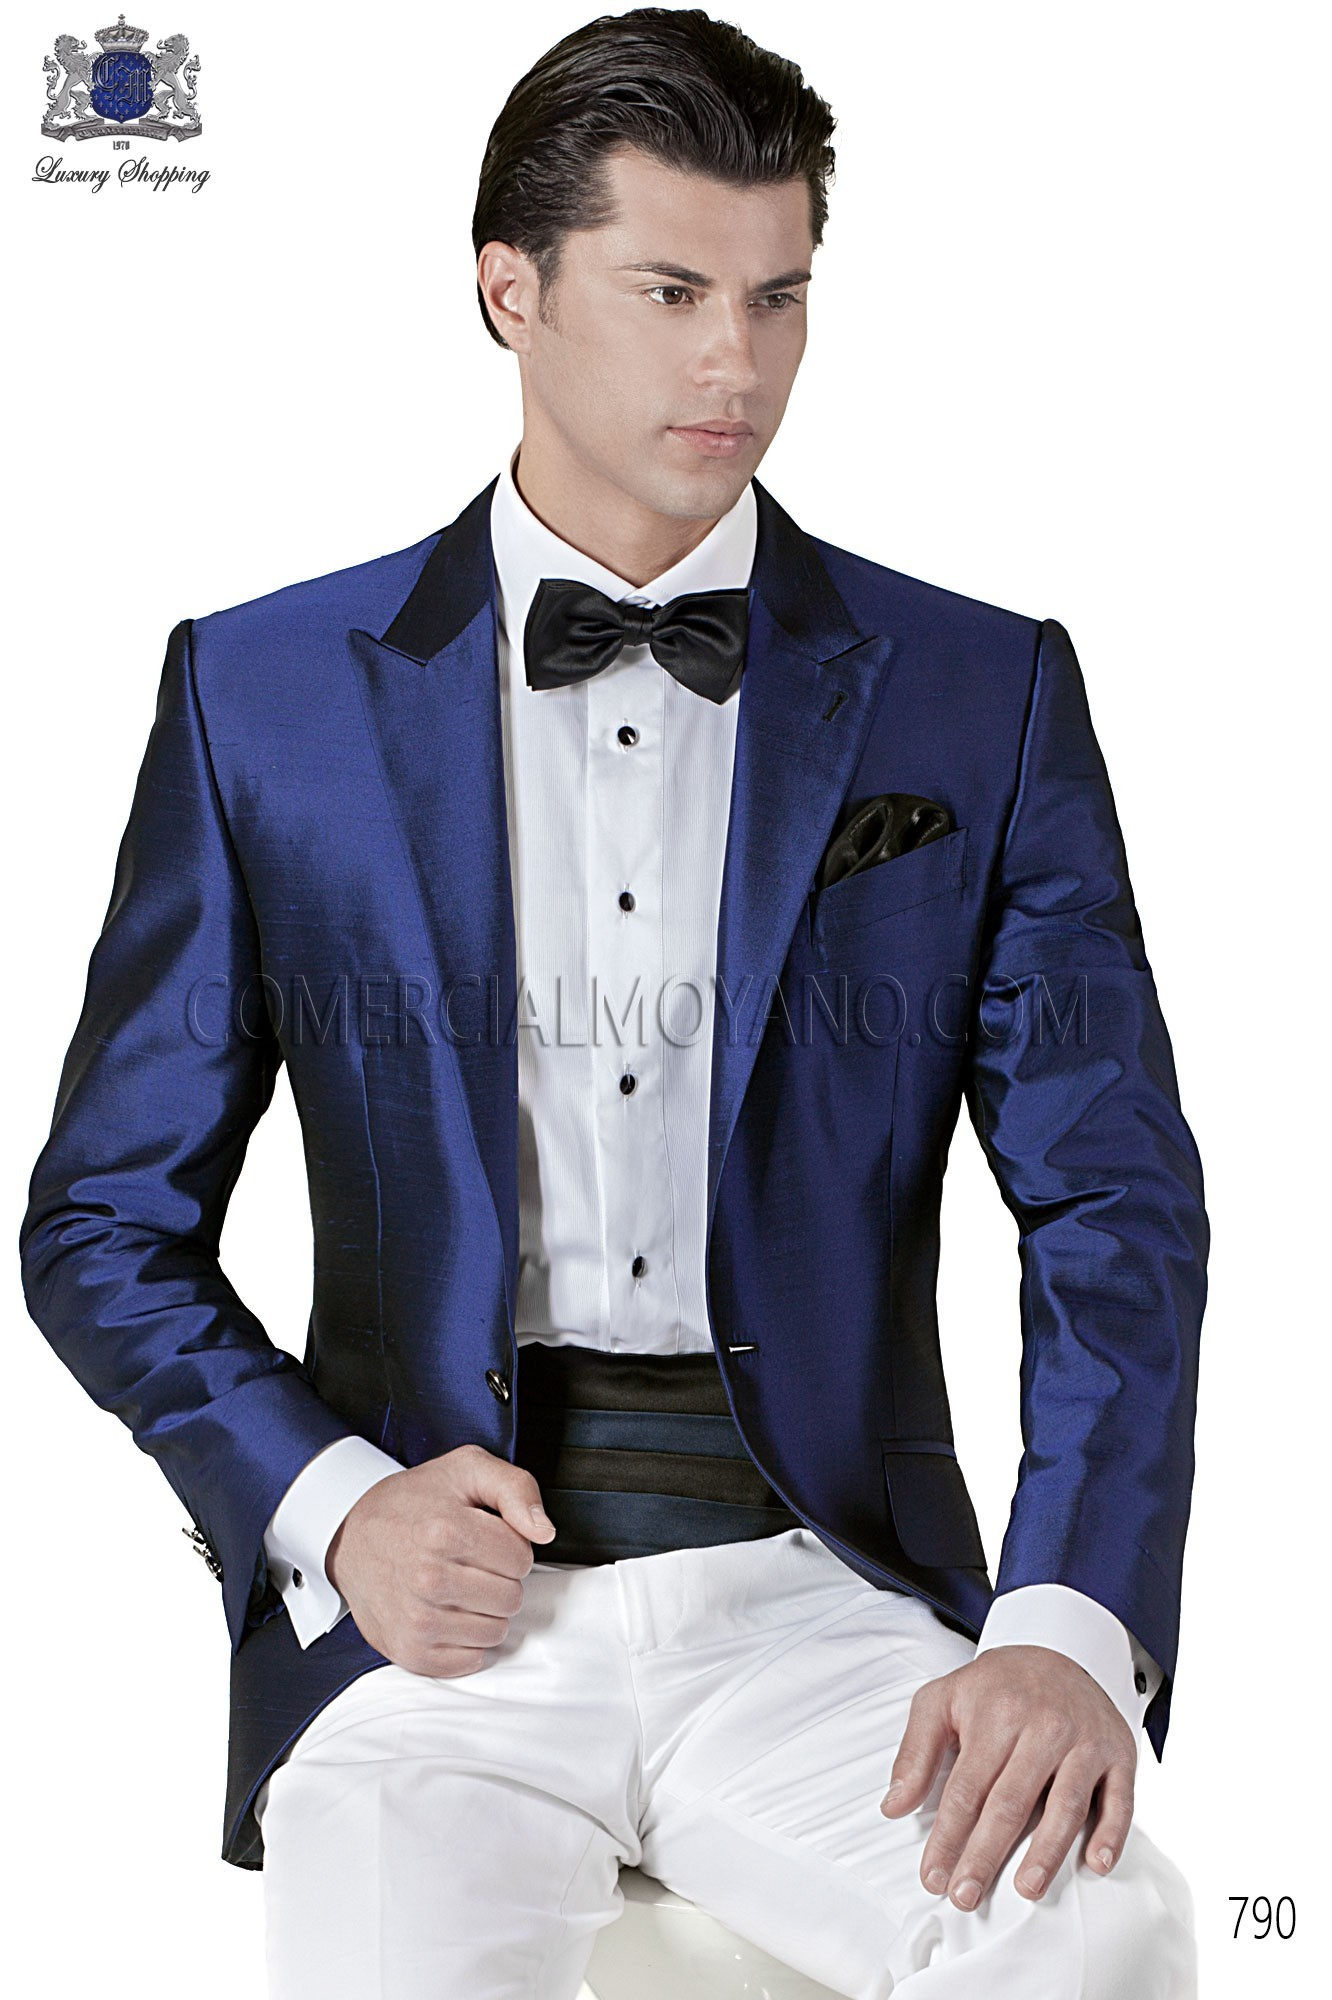 Black Tie blue men wedding suit model 790 Ottavio Nuccio Gala